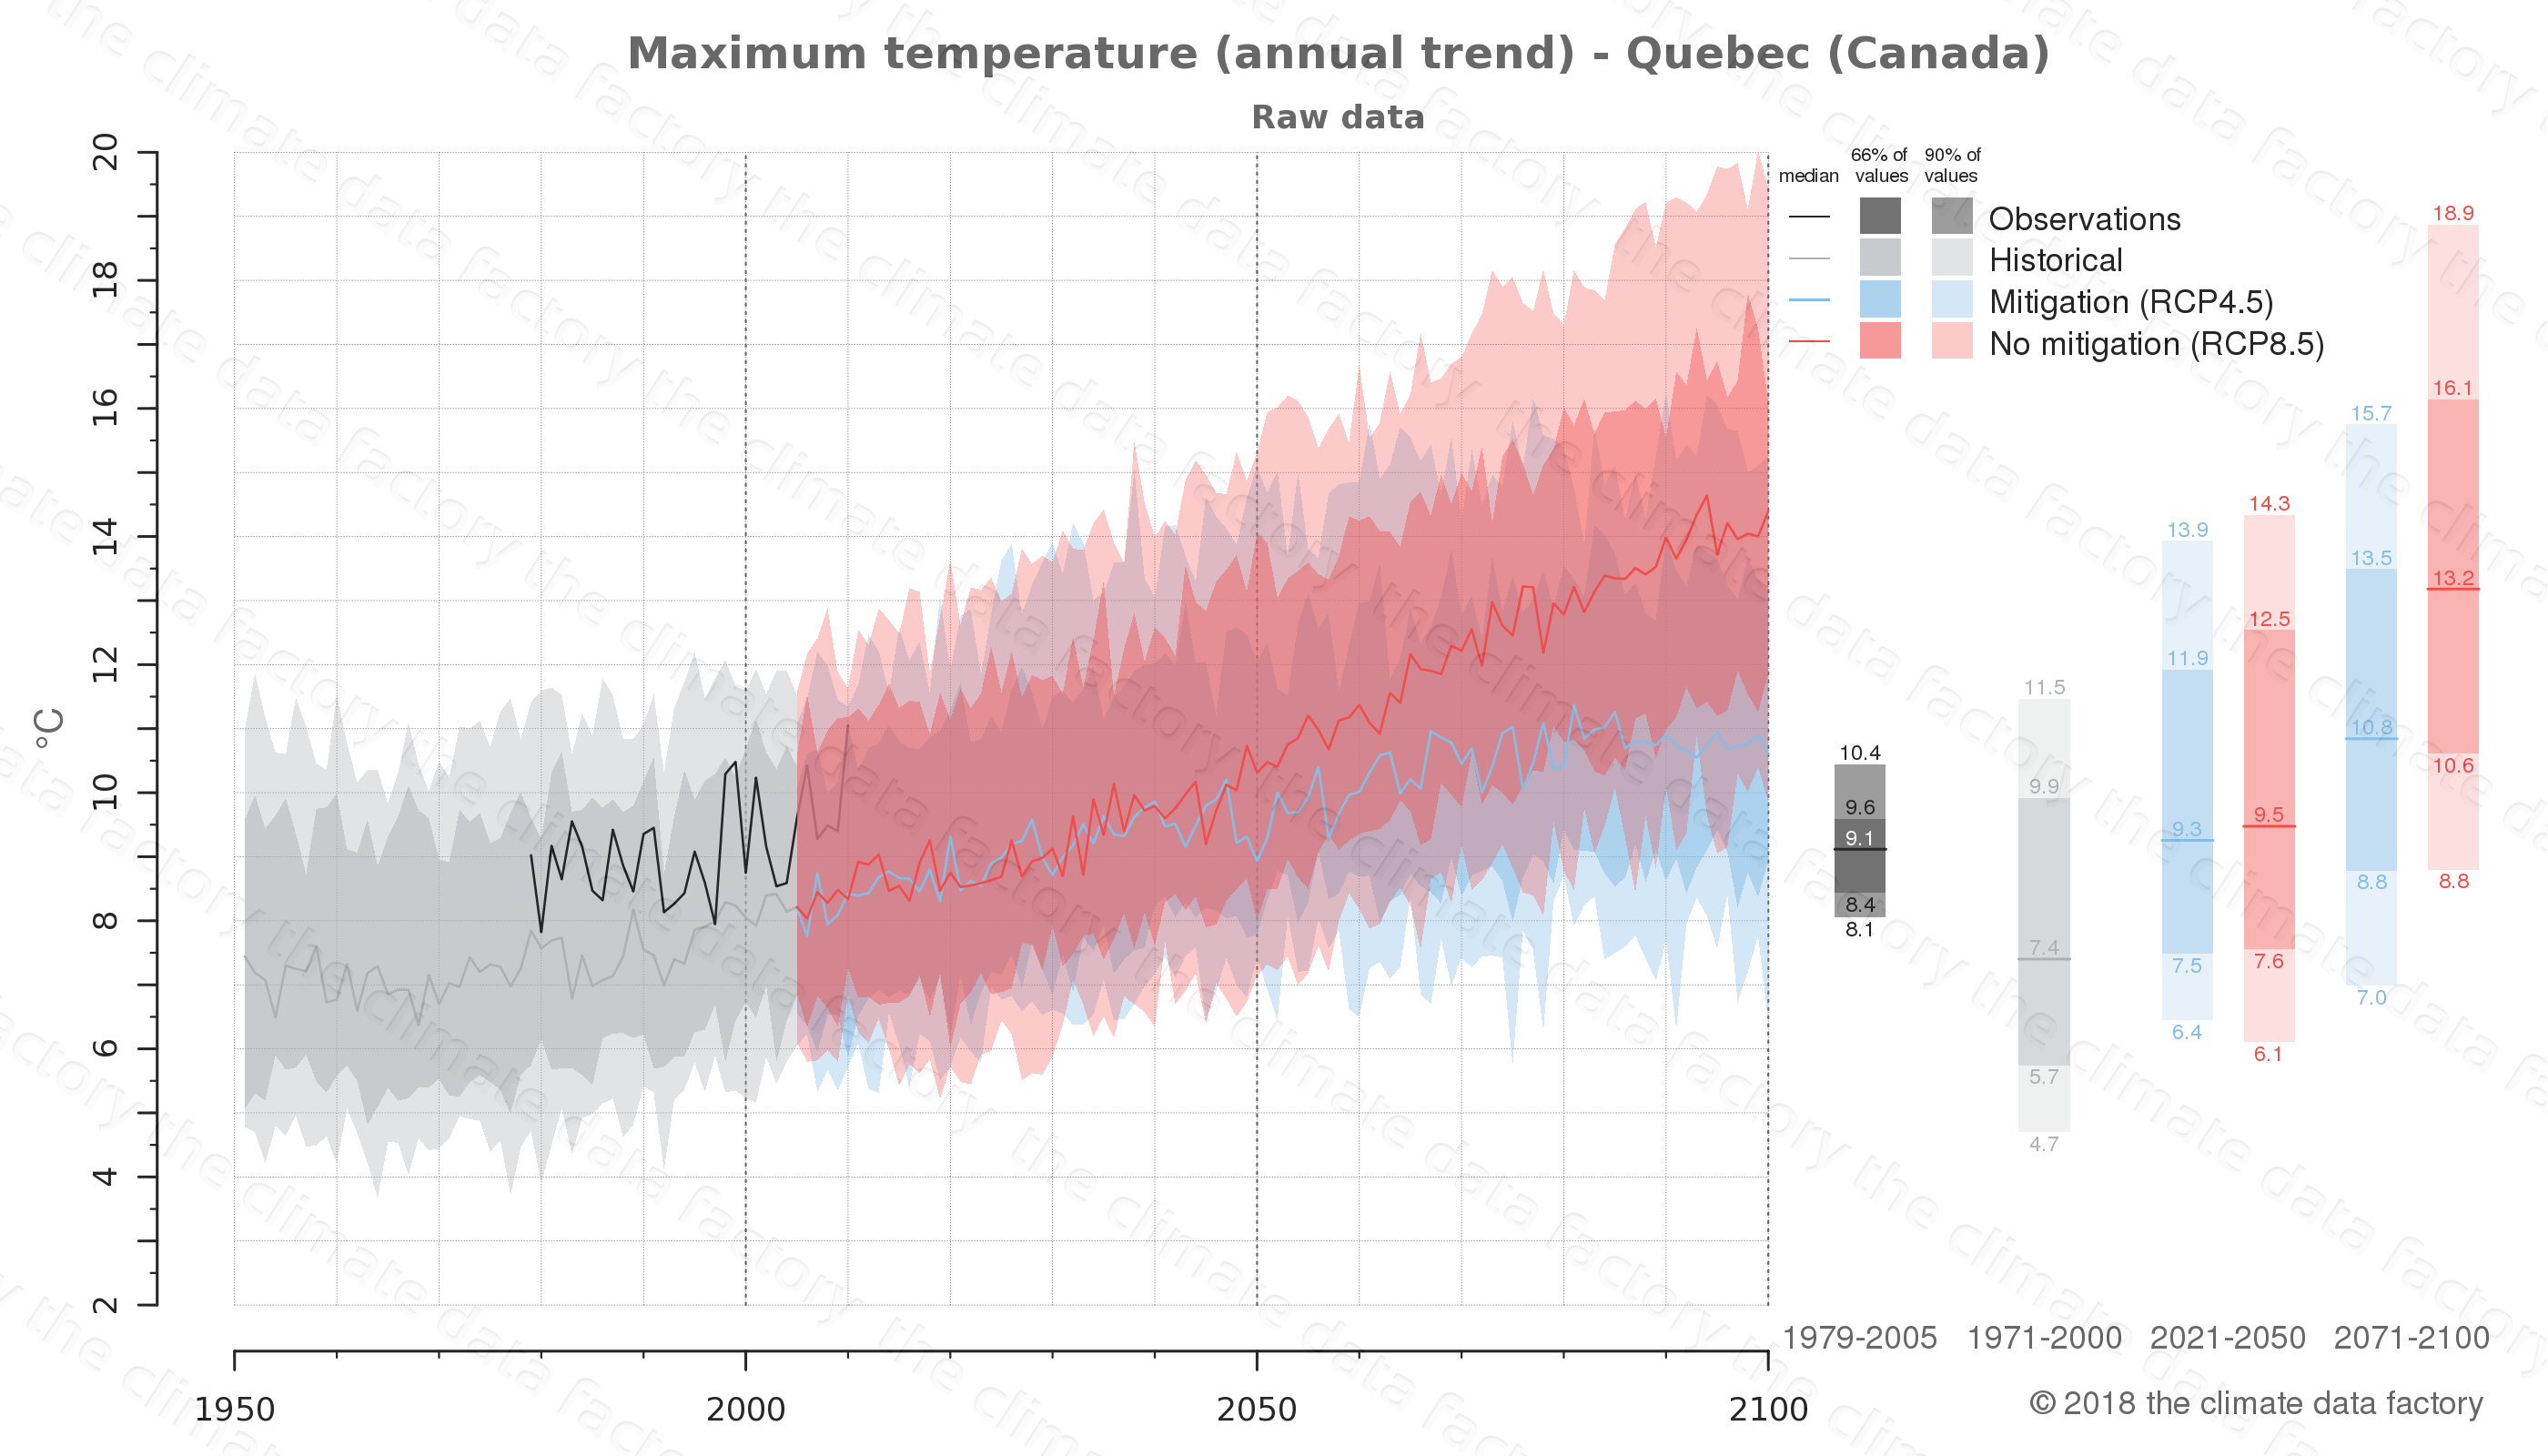 climate change data policy adaptation climate graph city data maximum-temperature quebec canada